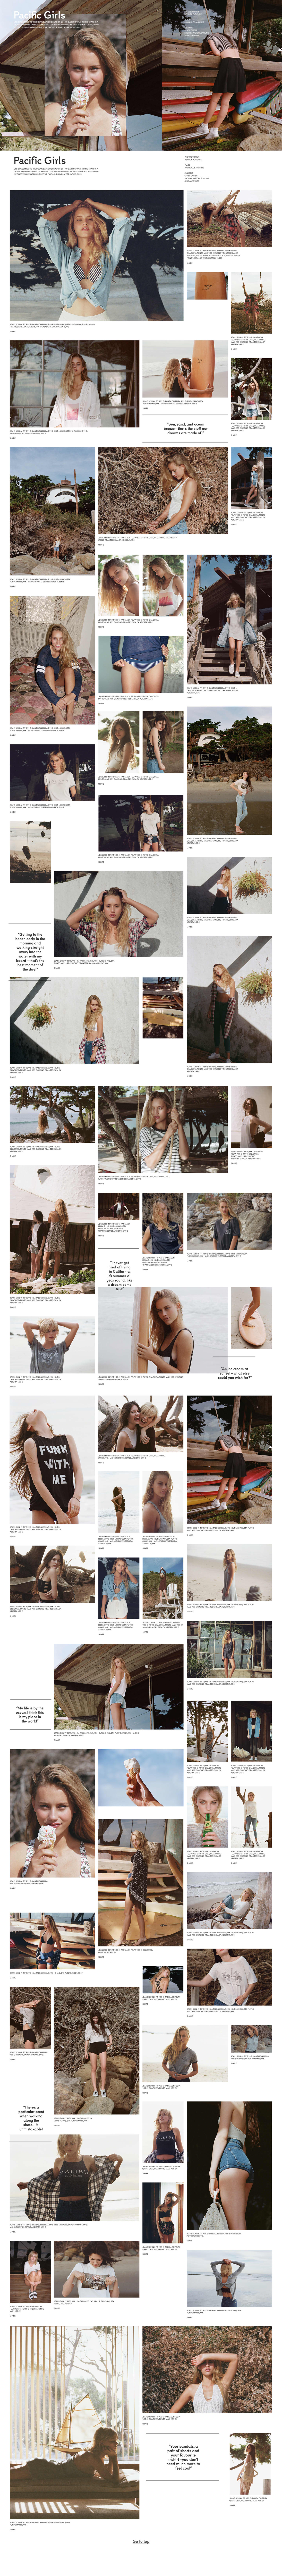 Pull&bear Editorial - Pacific Girls / photos by Henrik Purienne